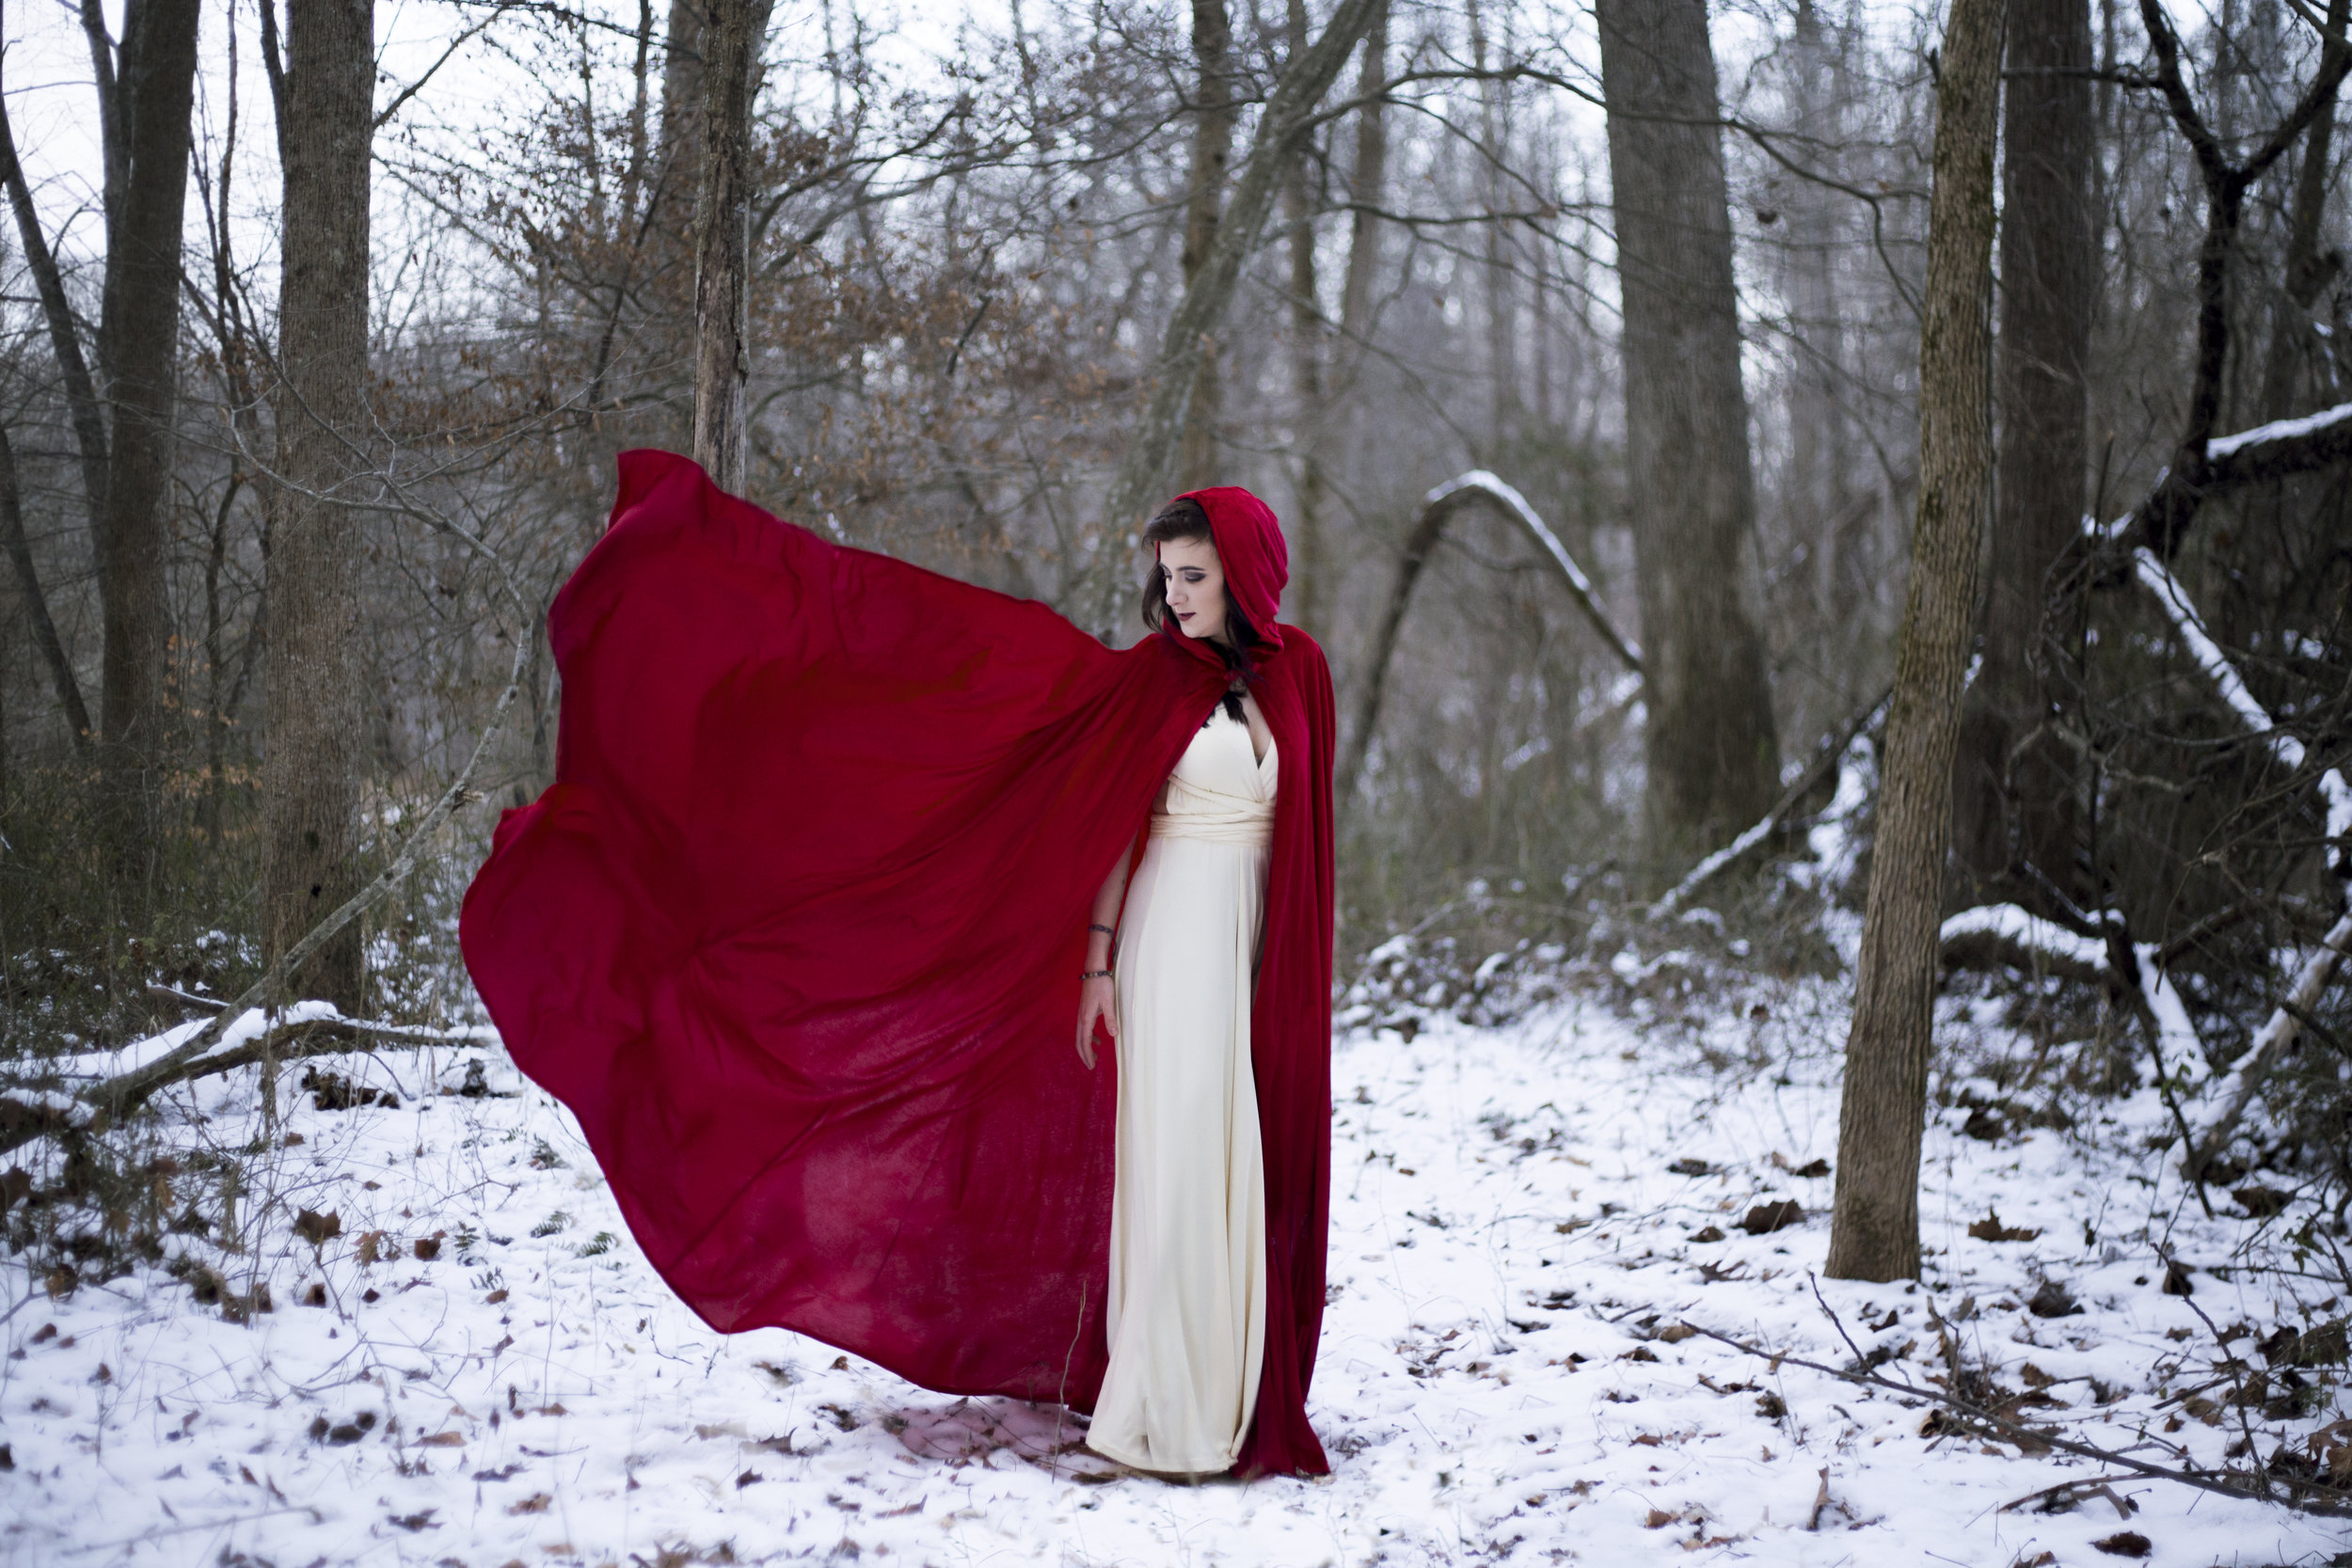 Little Red grew up. She finds comfort in the dark woods now.